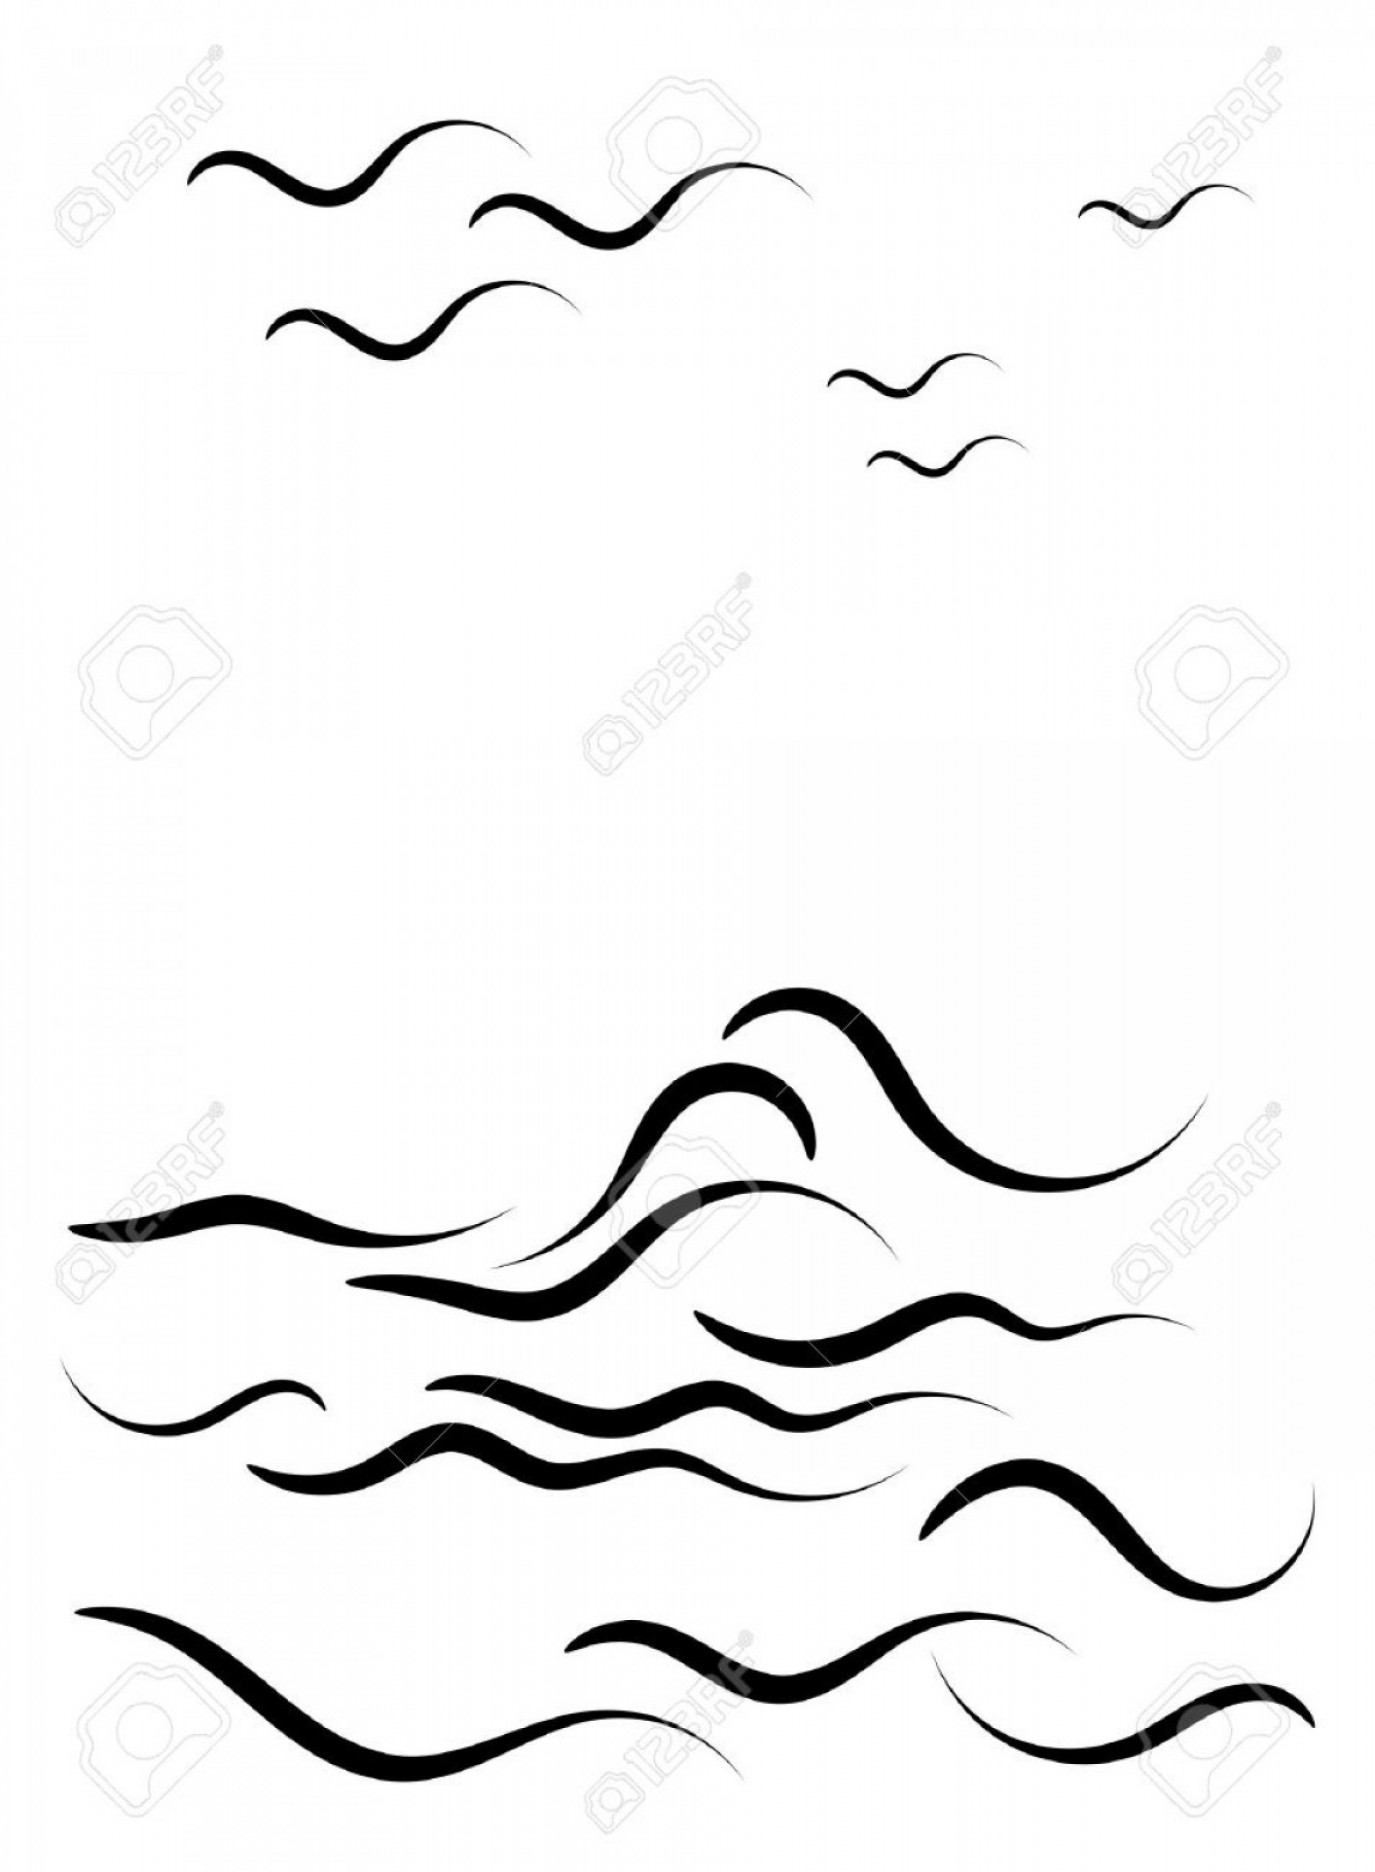 Ocean Water Clip Art Vector: Ocean Water Clipart Black And White